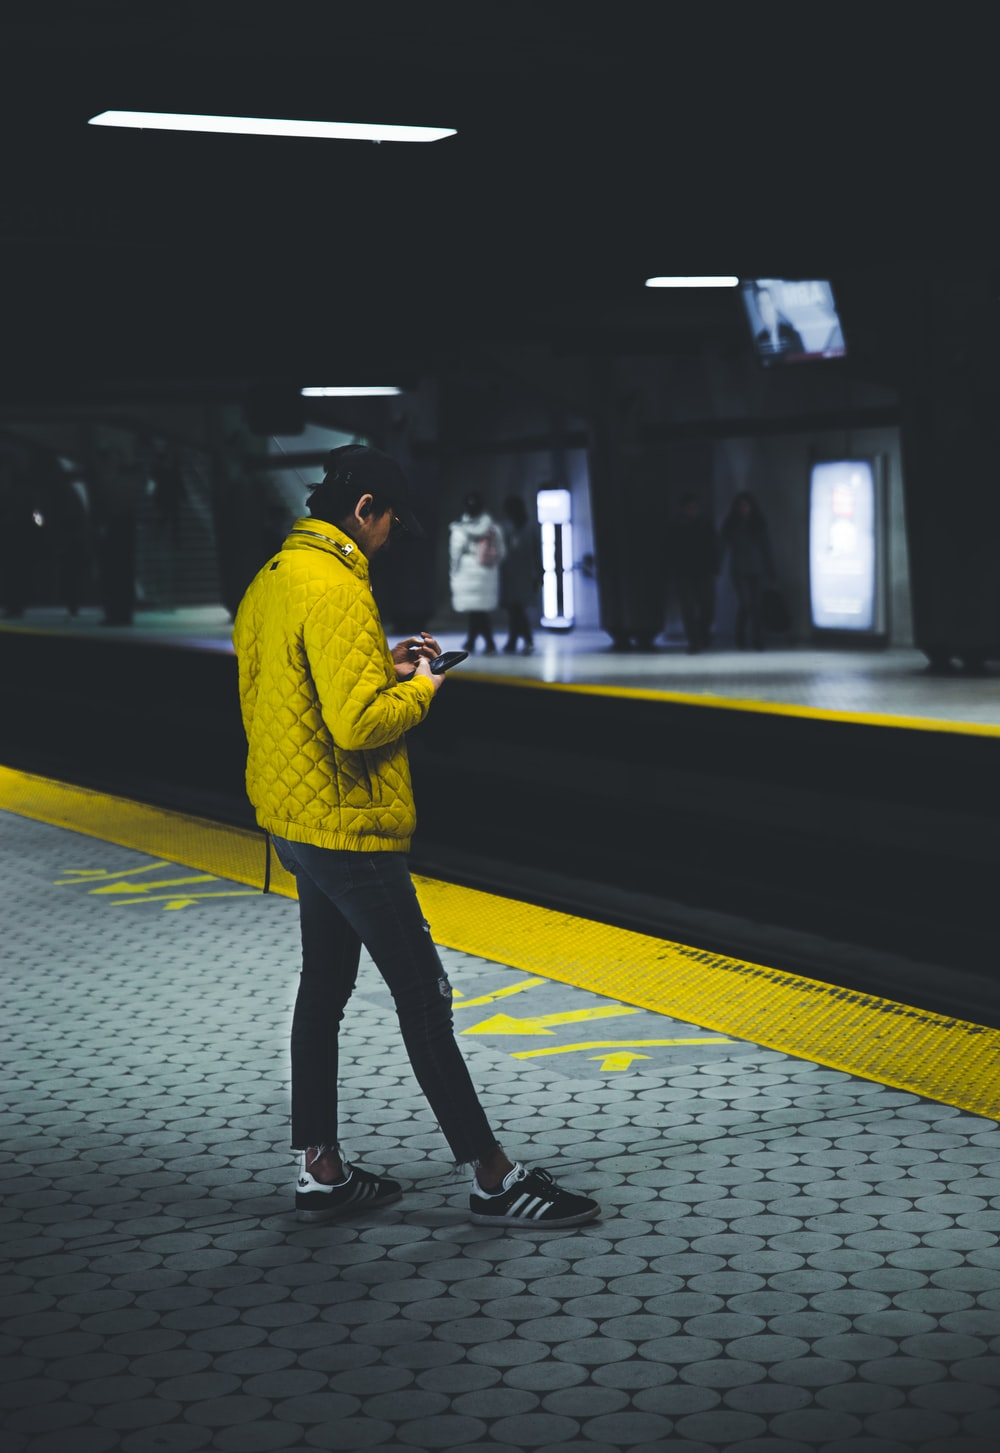 man standing wearing yellow jacket